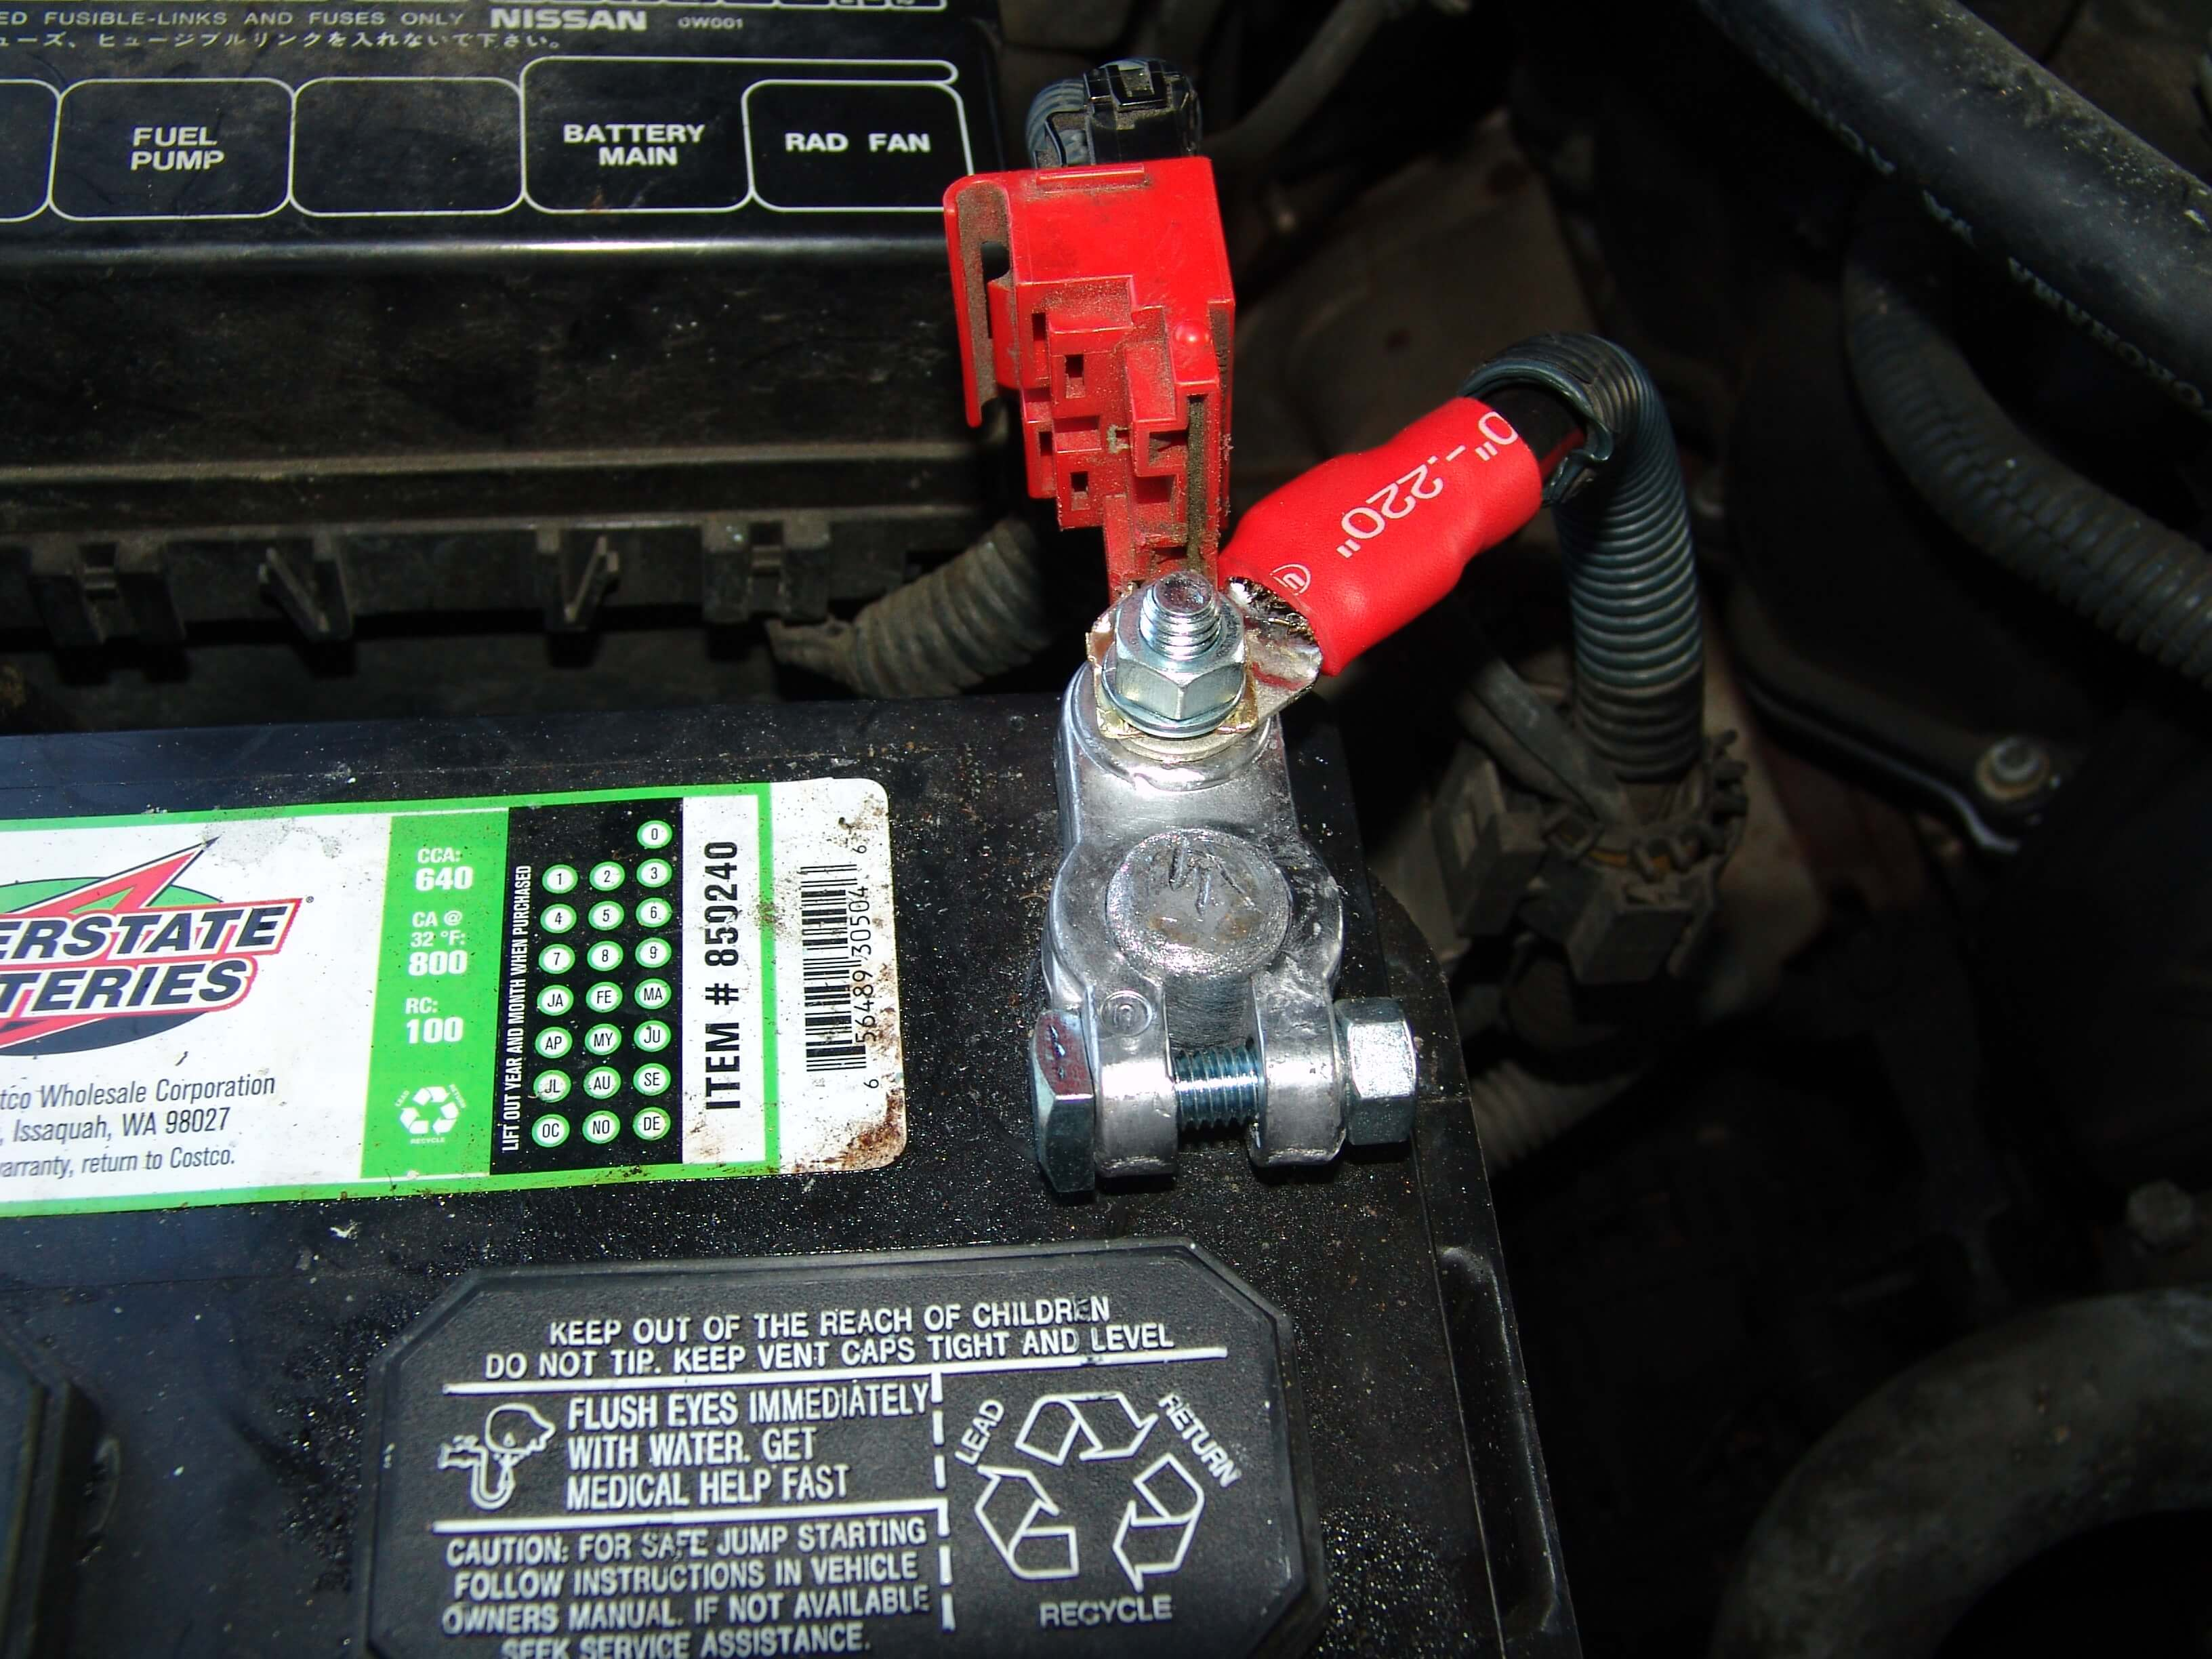 Sparkys Answers - 1996 Nissan Pathfinder, Installing a New